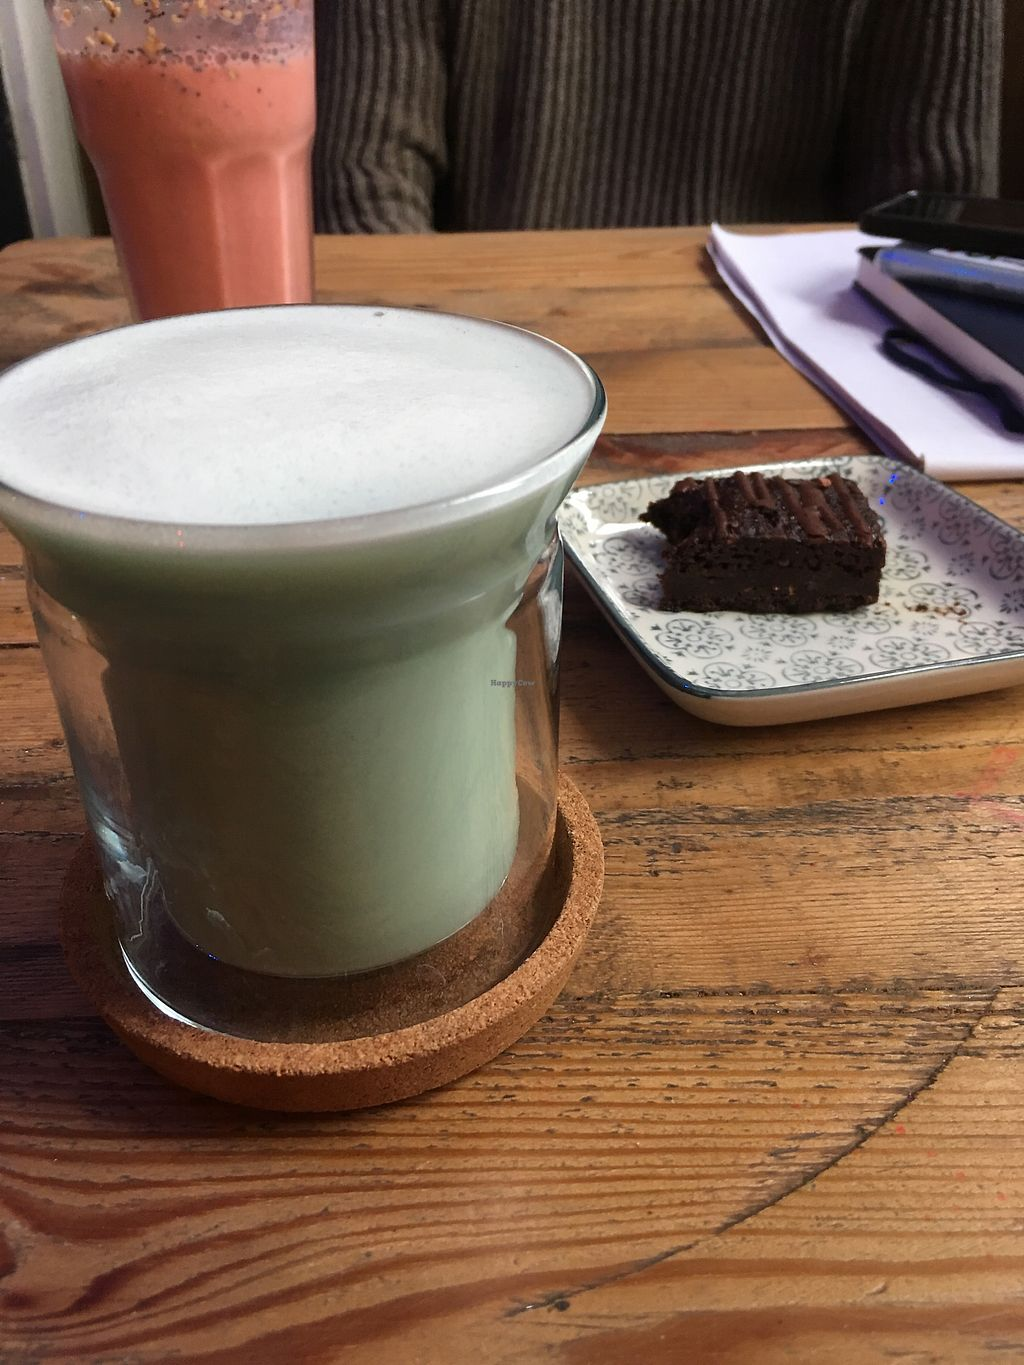 """Photo of CLOSED: Folks and Fables  by <a href=""""/members/profile/KitKat1350"""">KitKat1350</a> <br/>Mermaid latte and brownie <br/> February 5, 2018  - <a href='/contact/abuse/image/83778/355348'>Report</a>"""